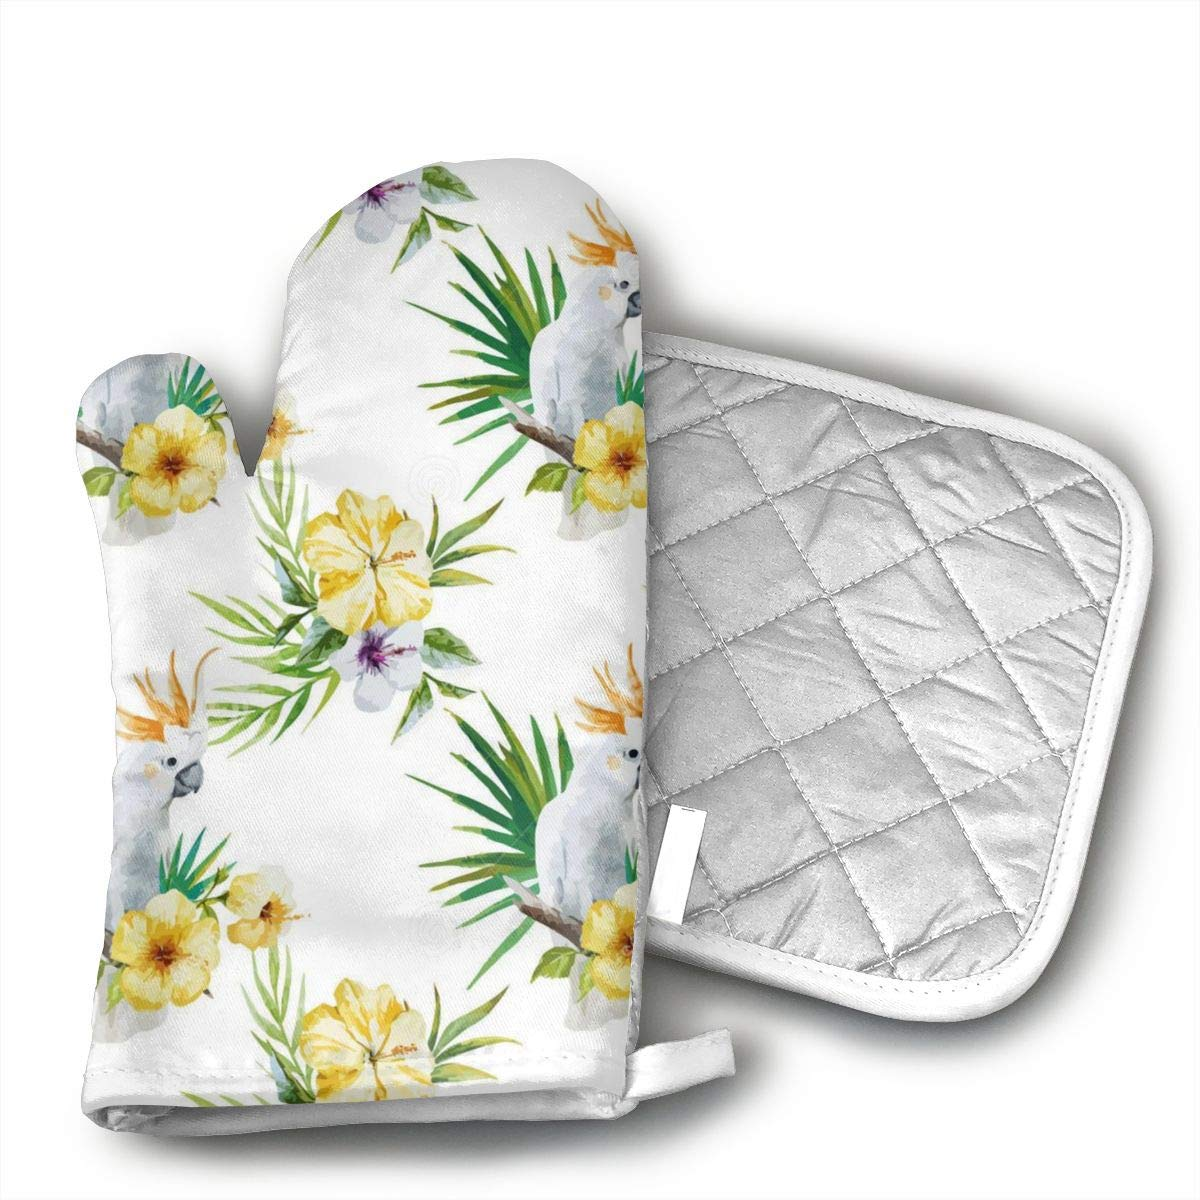 White Parrot Oven Mitts and Pot Holders Kitchen Mitten Cooking Gloves,Cooking, Baking, BBQ.